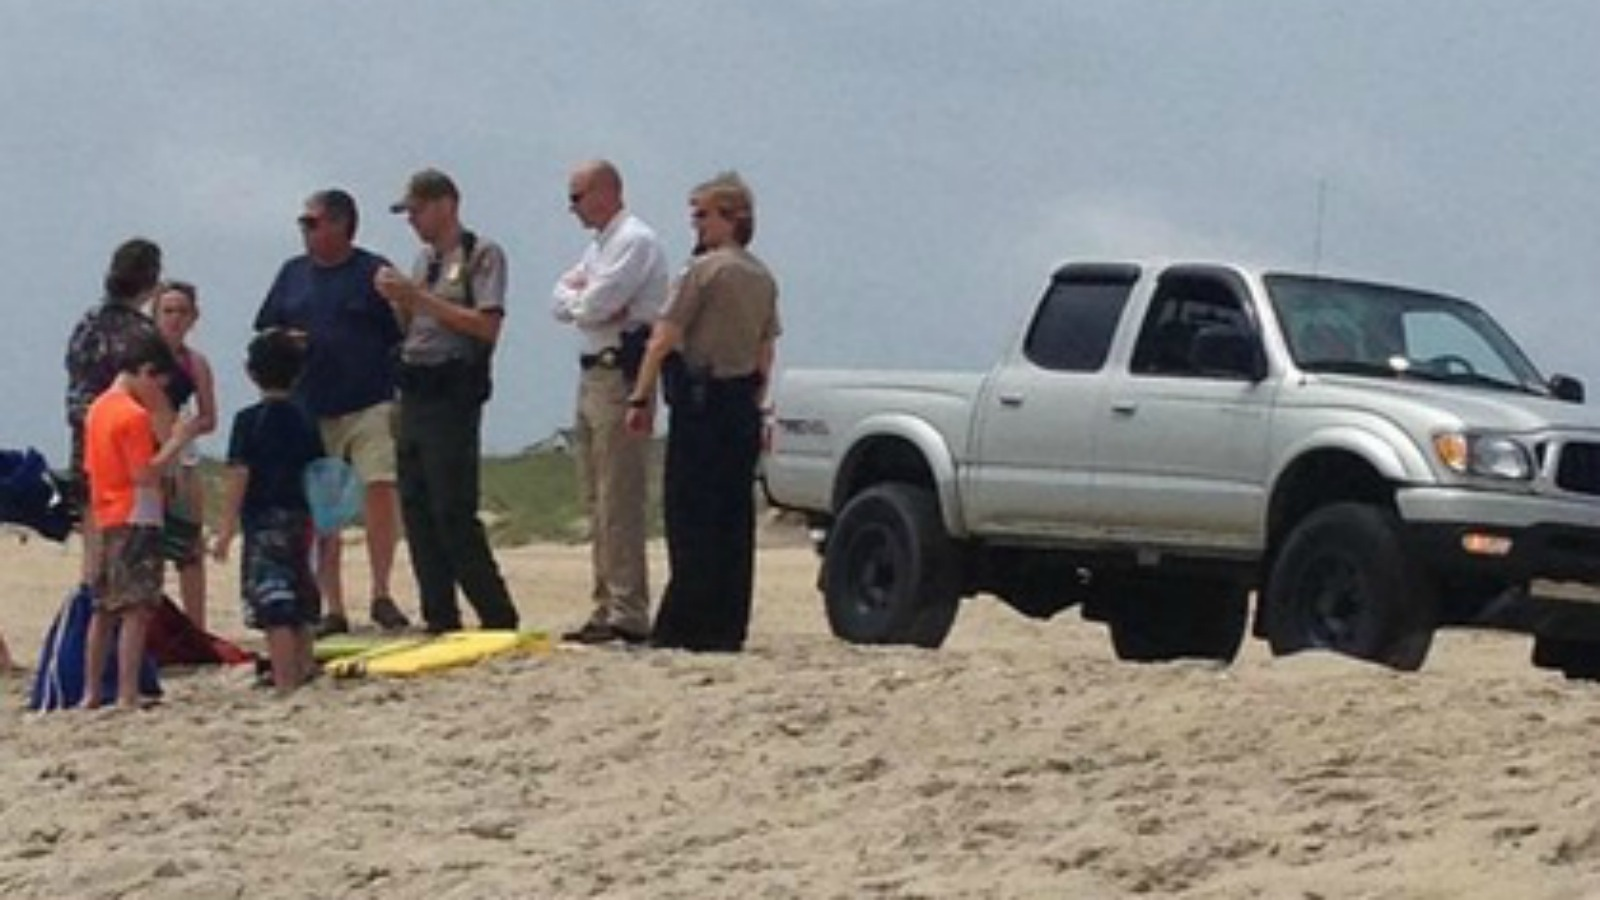 Video Man Bitten By Shark In Outer Banks While Trying To Get Others To Safety Myfox8 Com